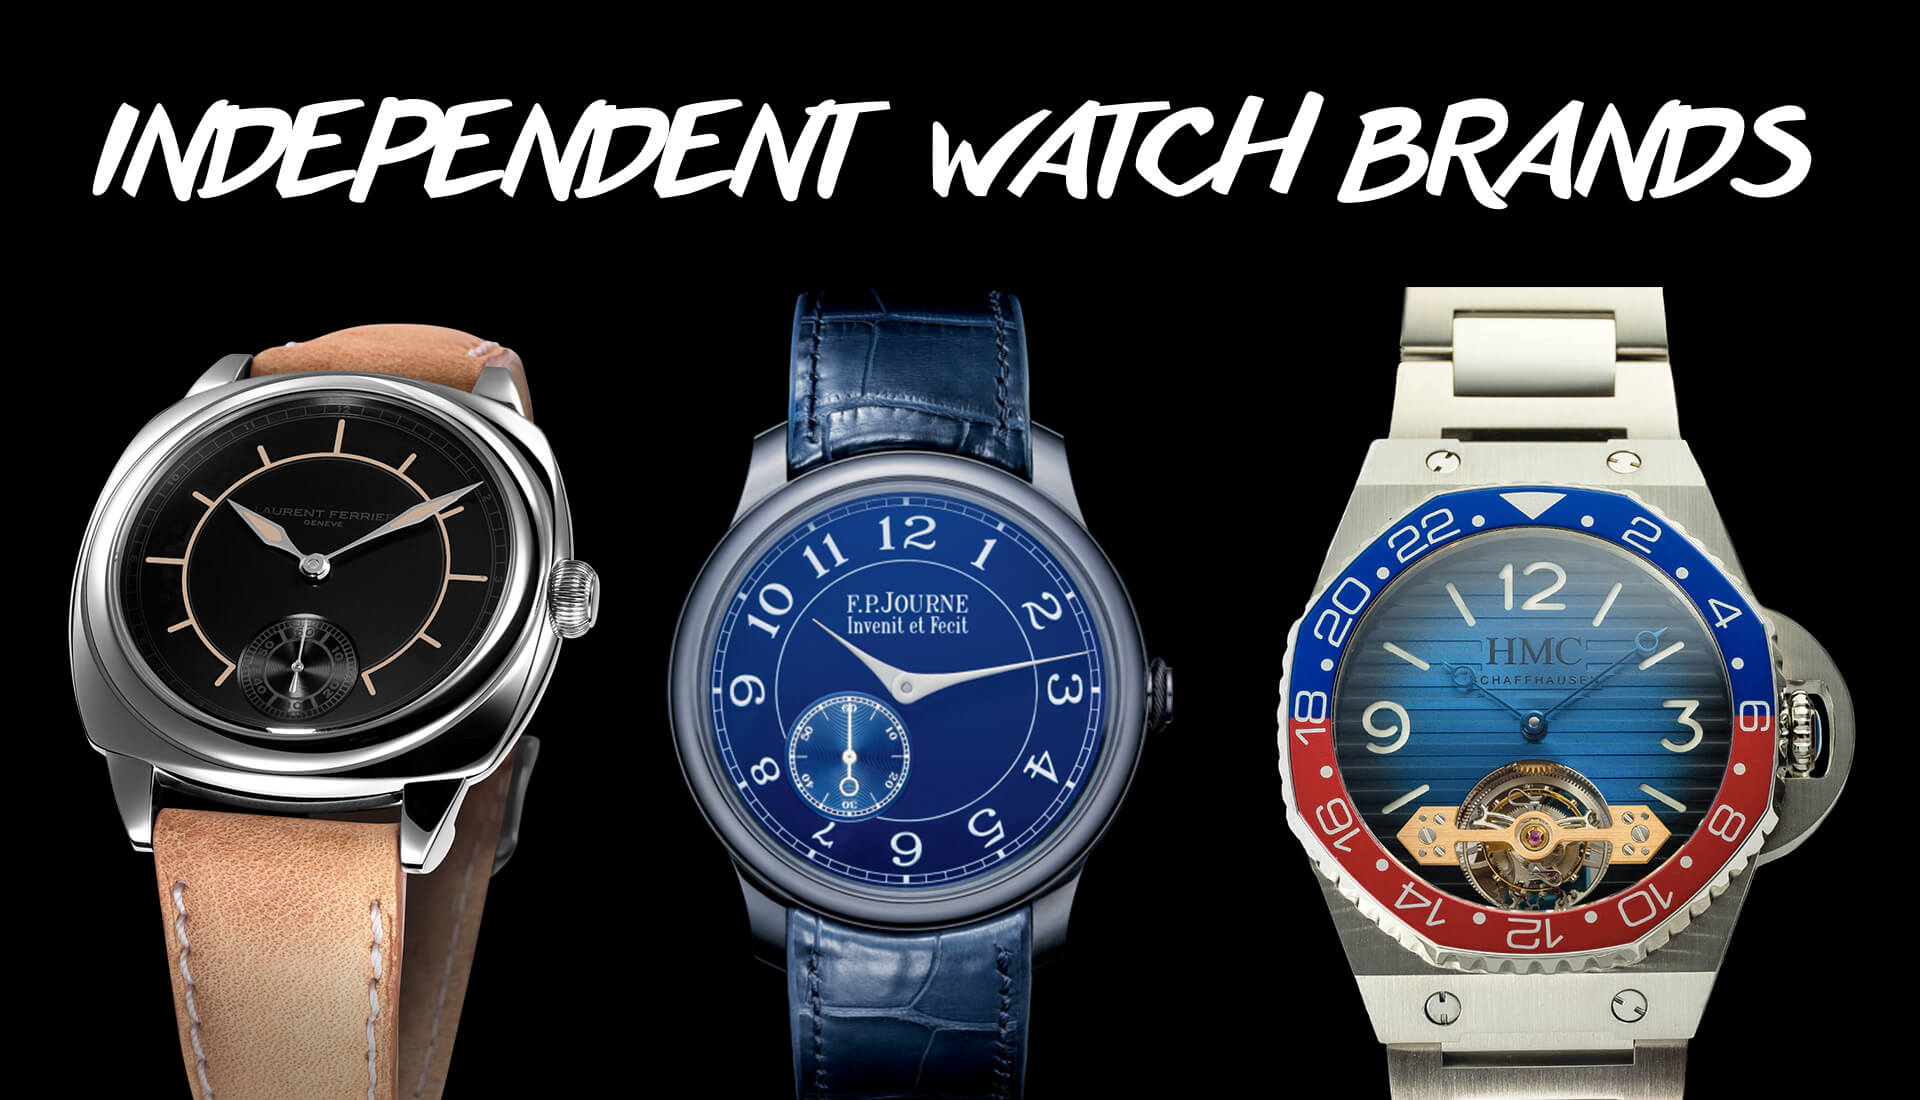 Watch 101: Microbrands, Independent Brands, and Mainstream Brands – Part 2